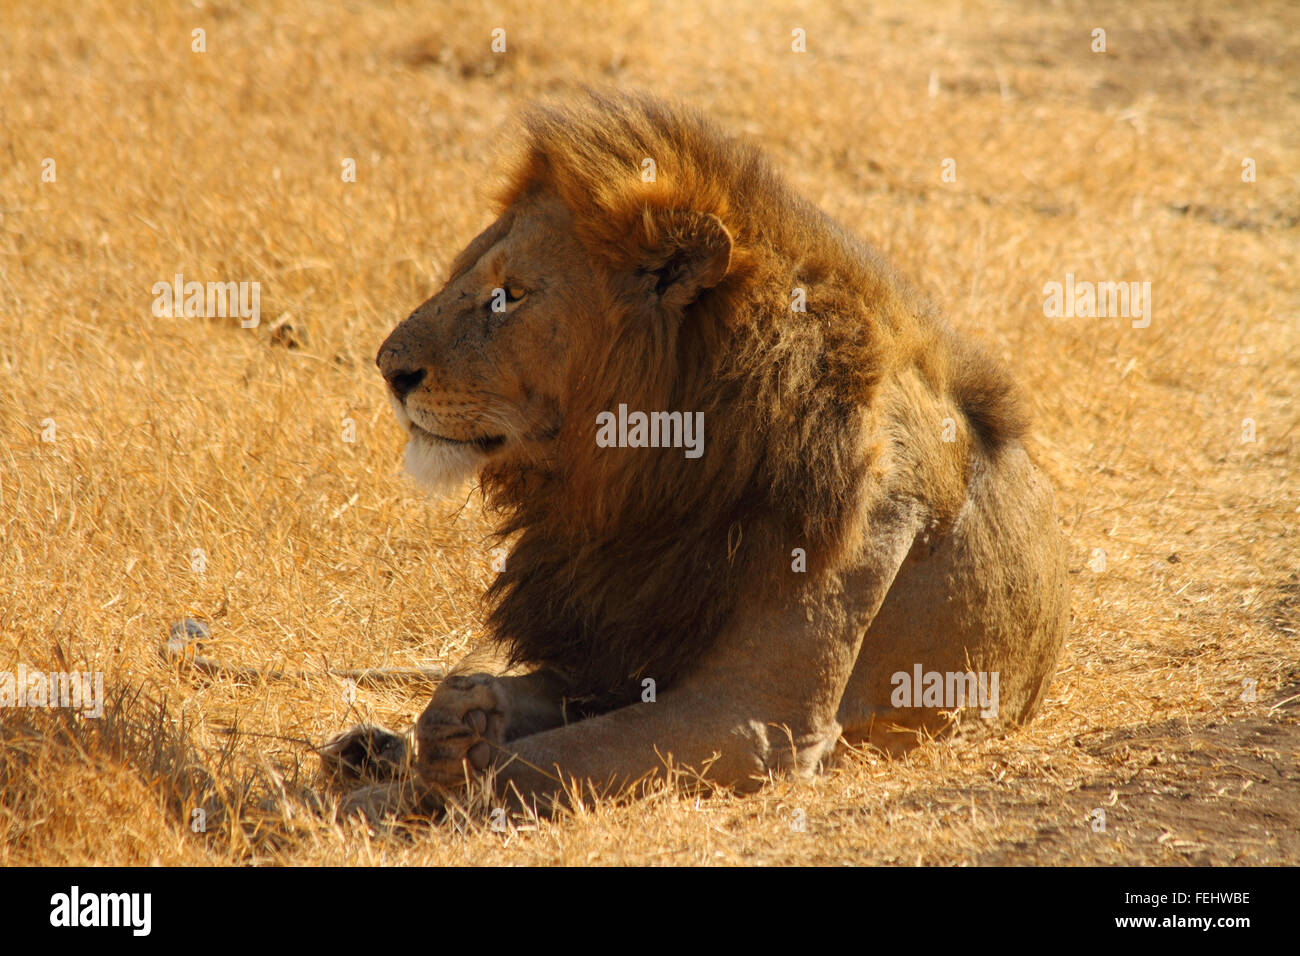 Majestic Lion, leader of the pride - Stock Image